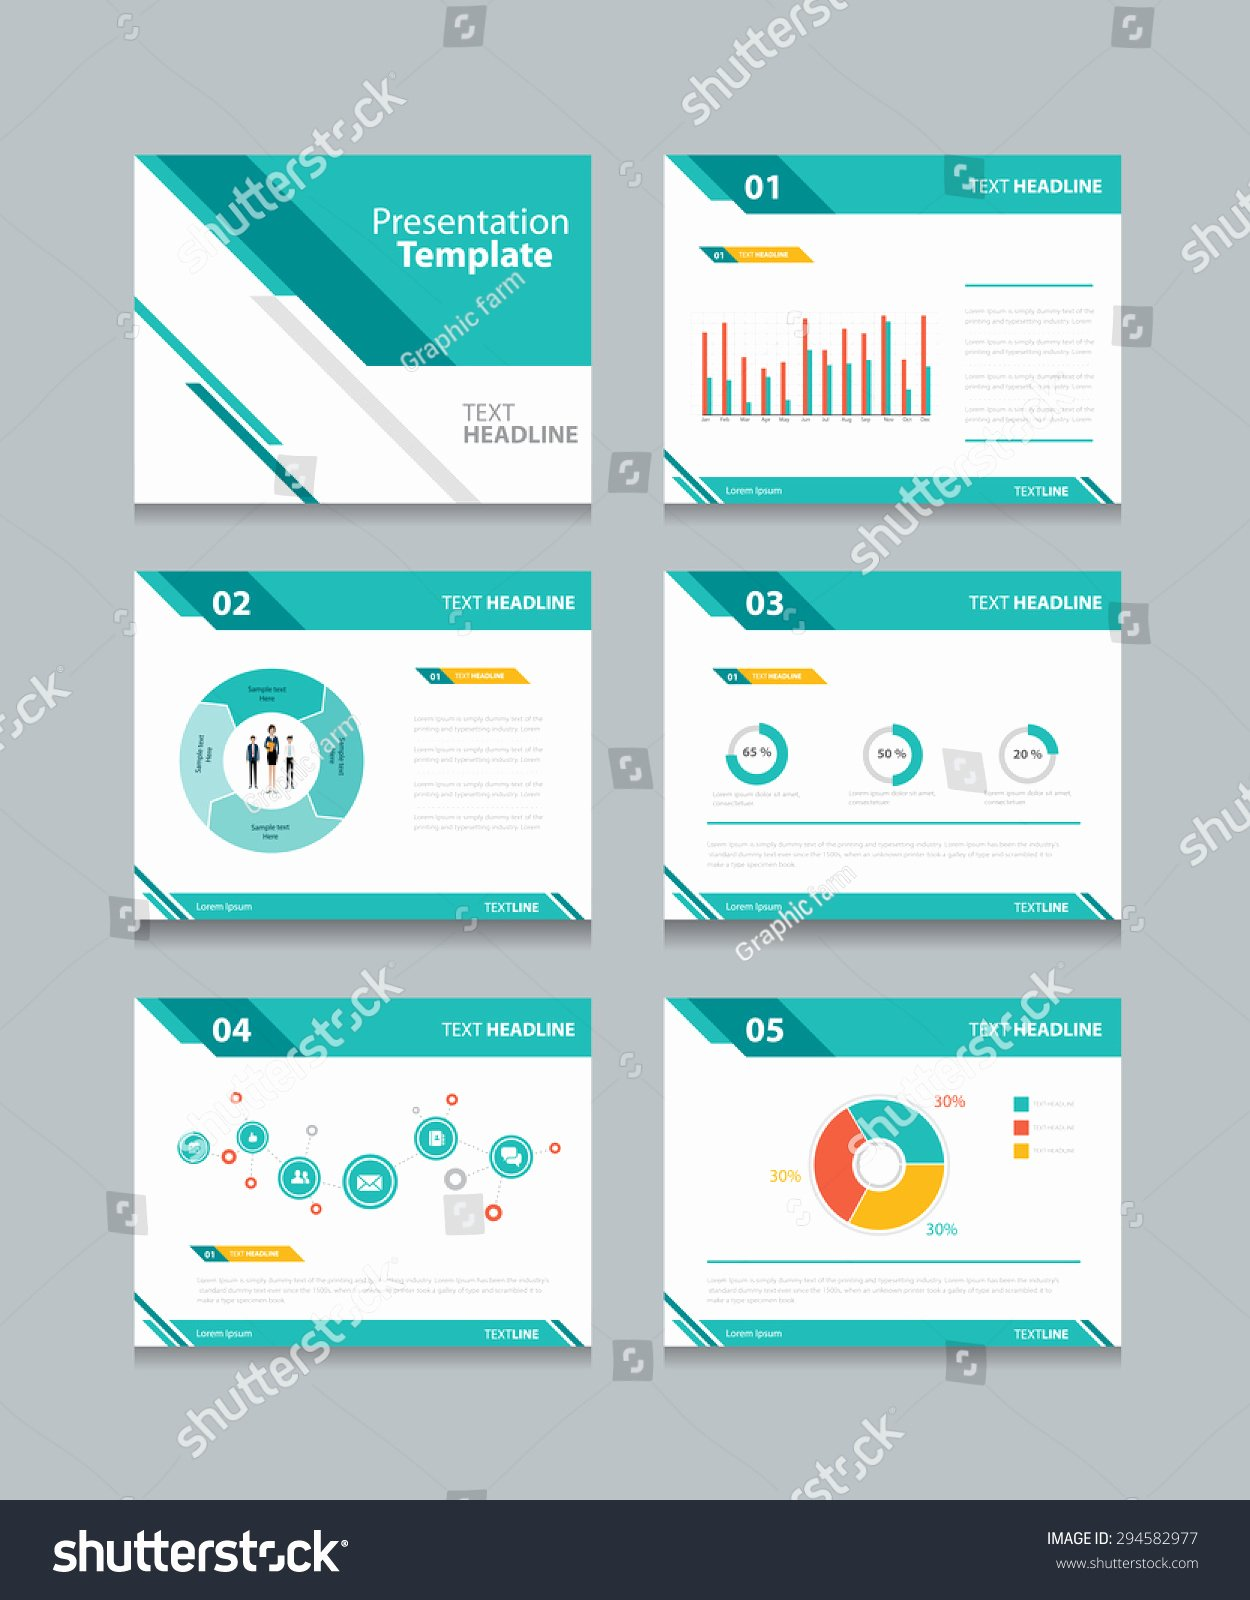 Business Presentation Ppt Templates Templates Resume